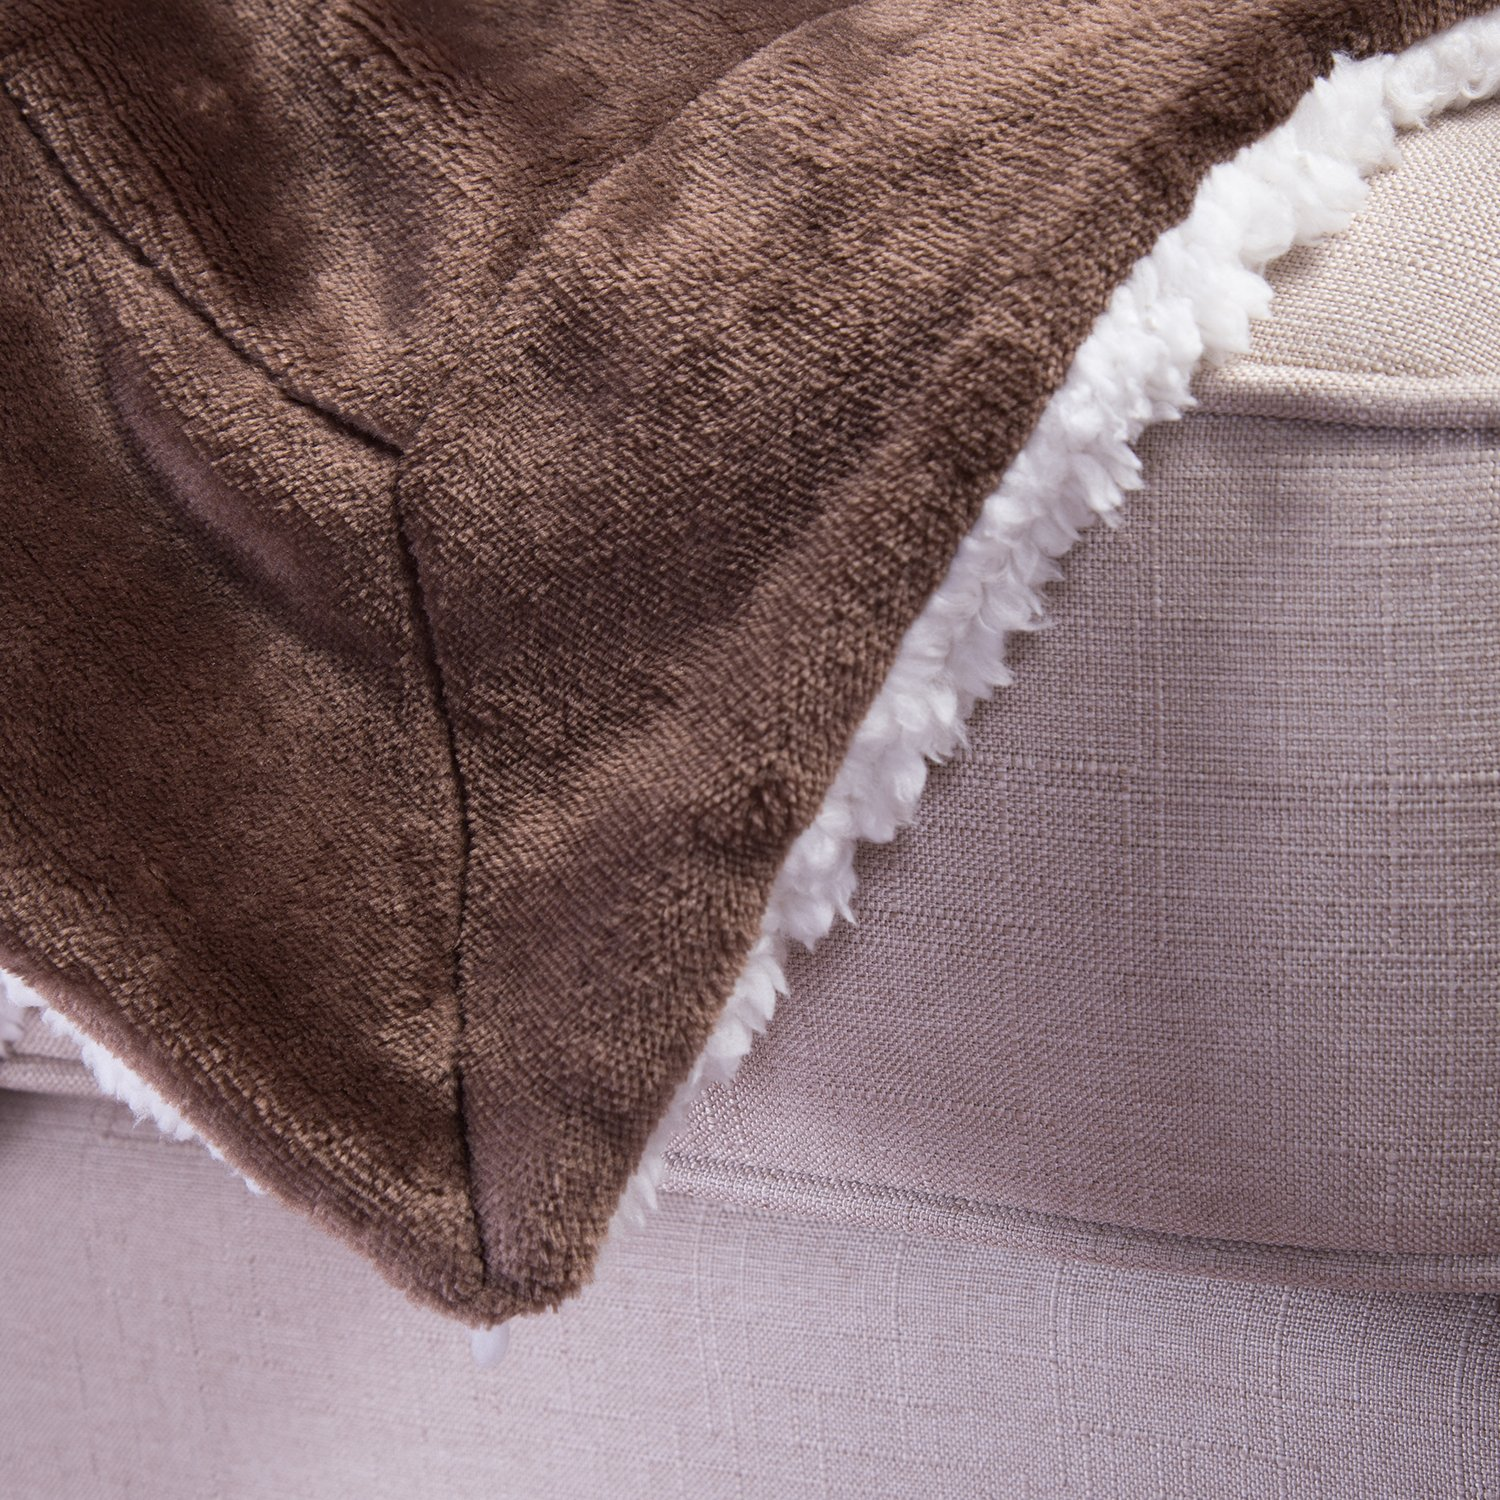 Sherpa Throw Blanket Brown 50x60 Reversible Fuzzy Microfiber All Season Blanket for Bed or Couch by Bedsure